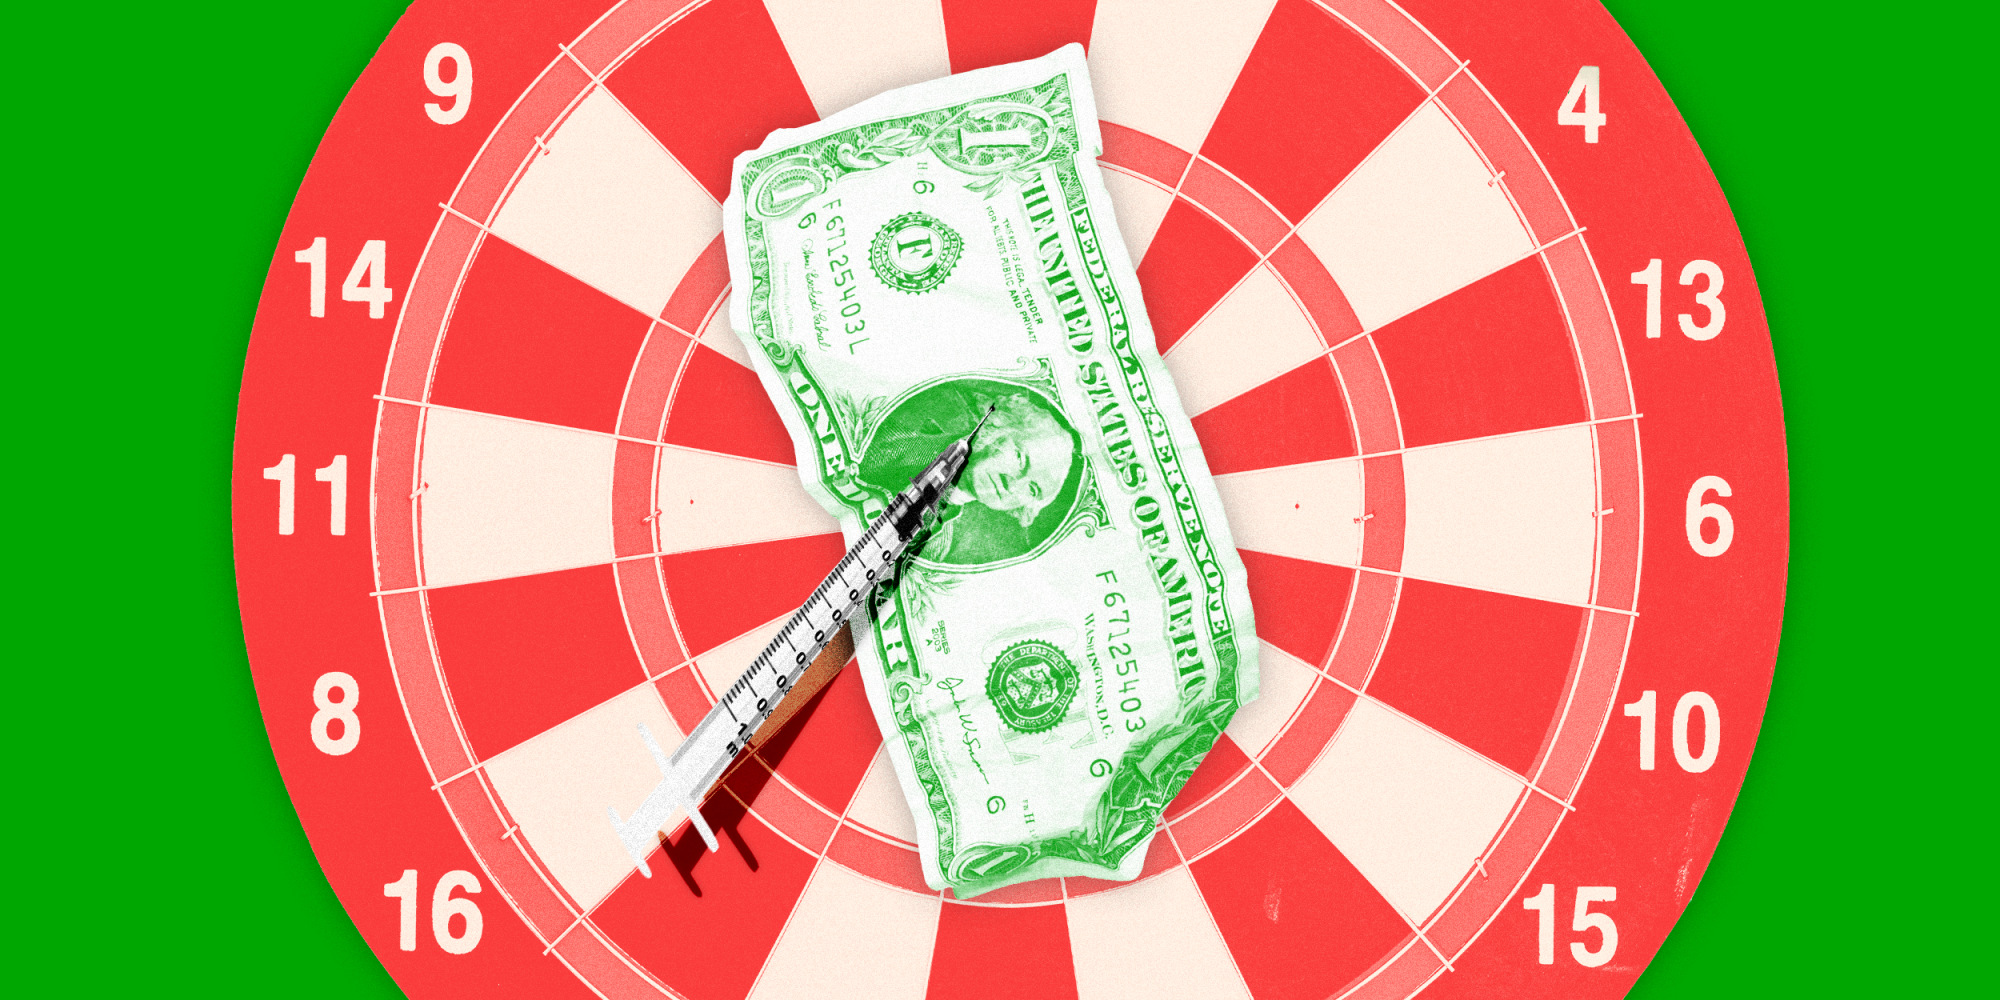 An illustration of a target and a vaccine shaped like a dart hitting the bullseye